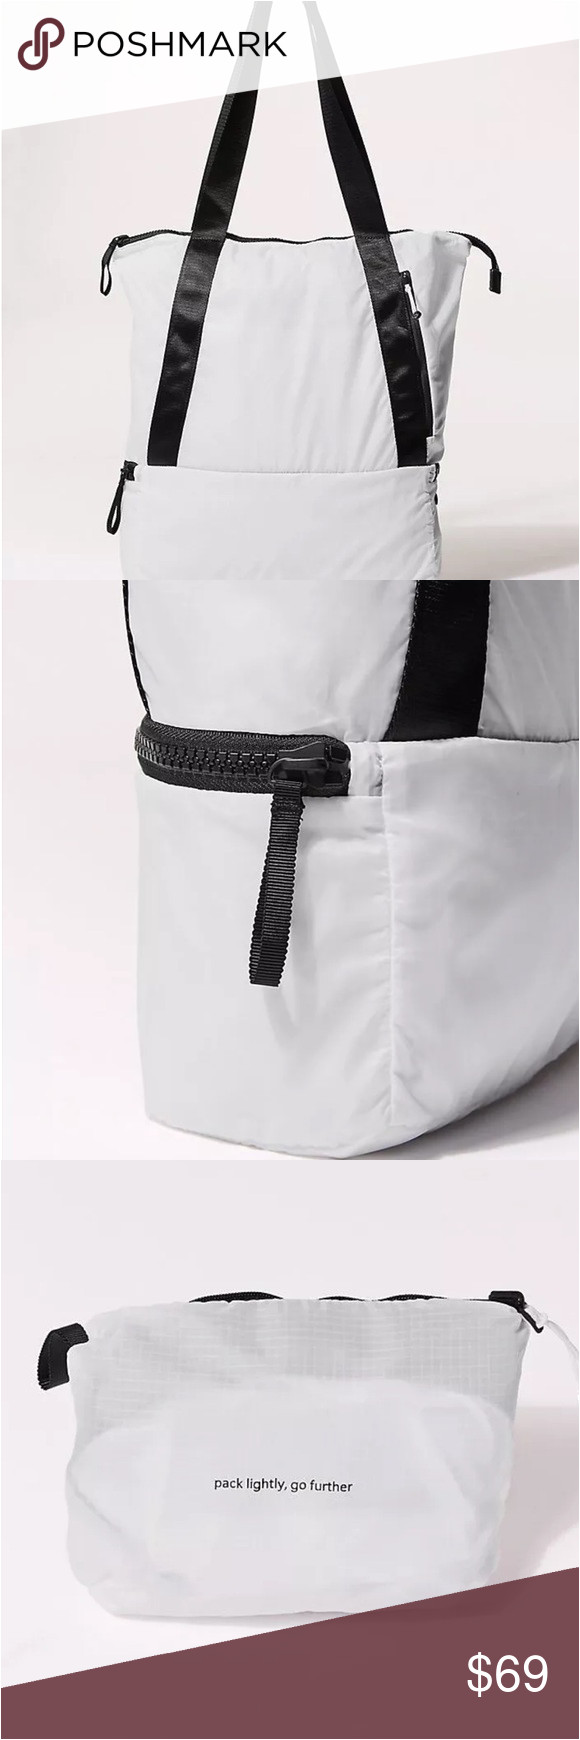 new lululemon go lightly tote packable brand new with tag color white dimensions